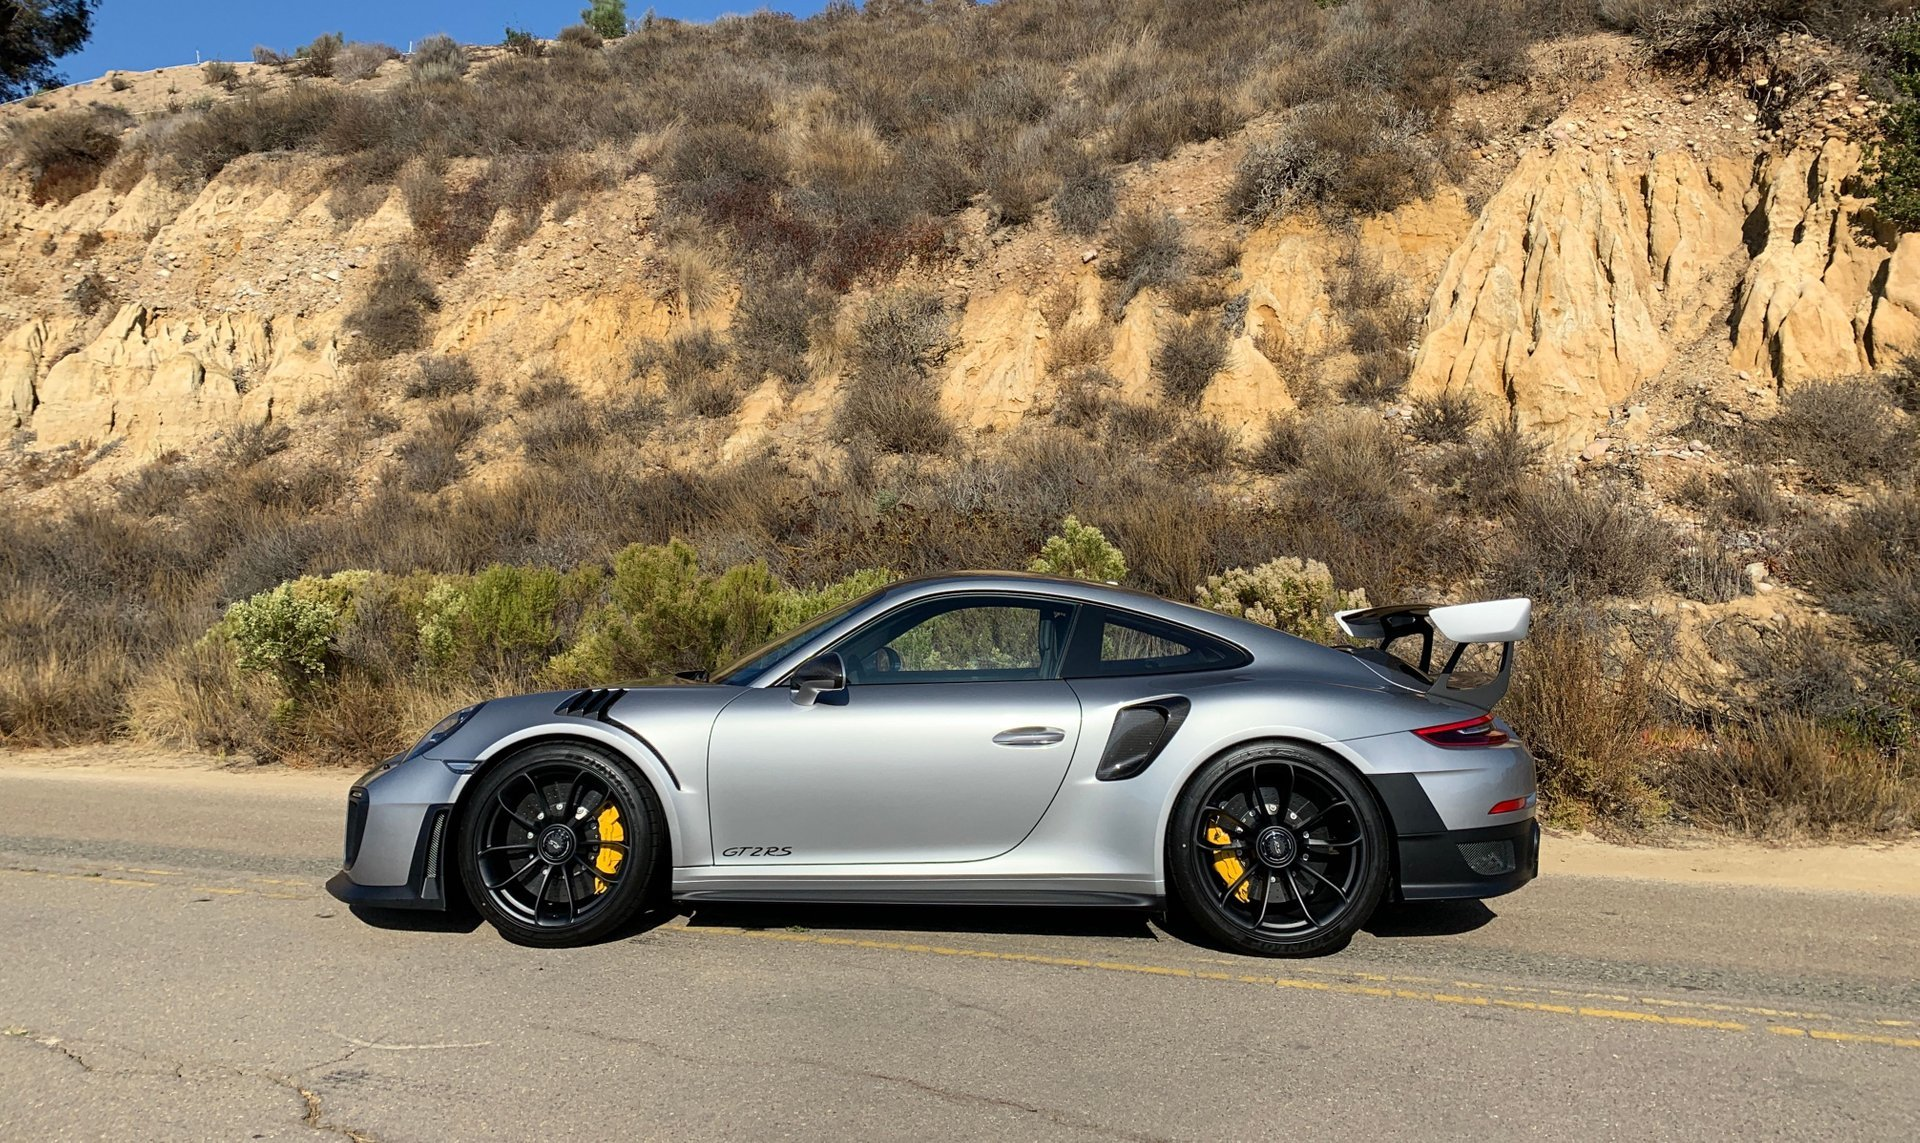 2019 Porsche 991 GT2 RS Weissach 911 Mint only 98 miles $349.5k For Sale (picture 1 of 6)